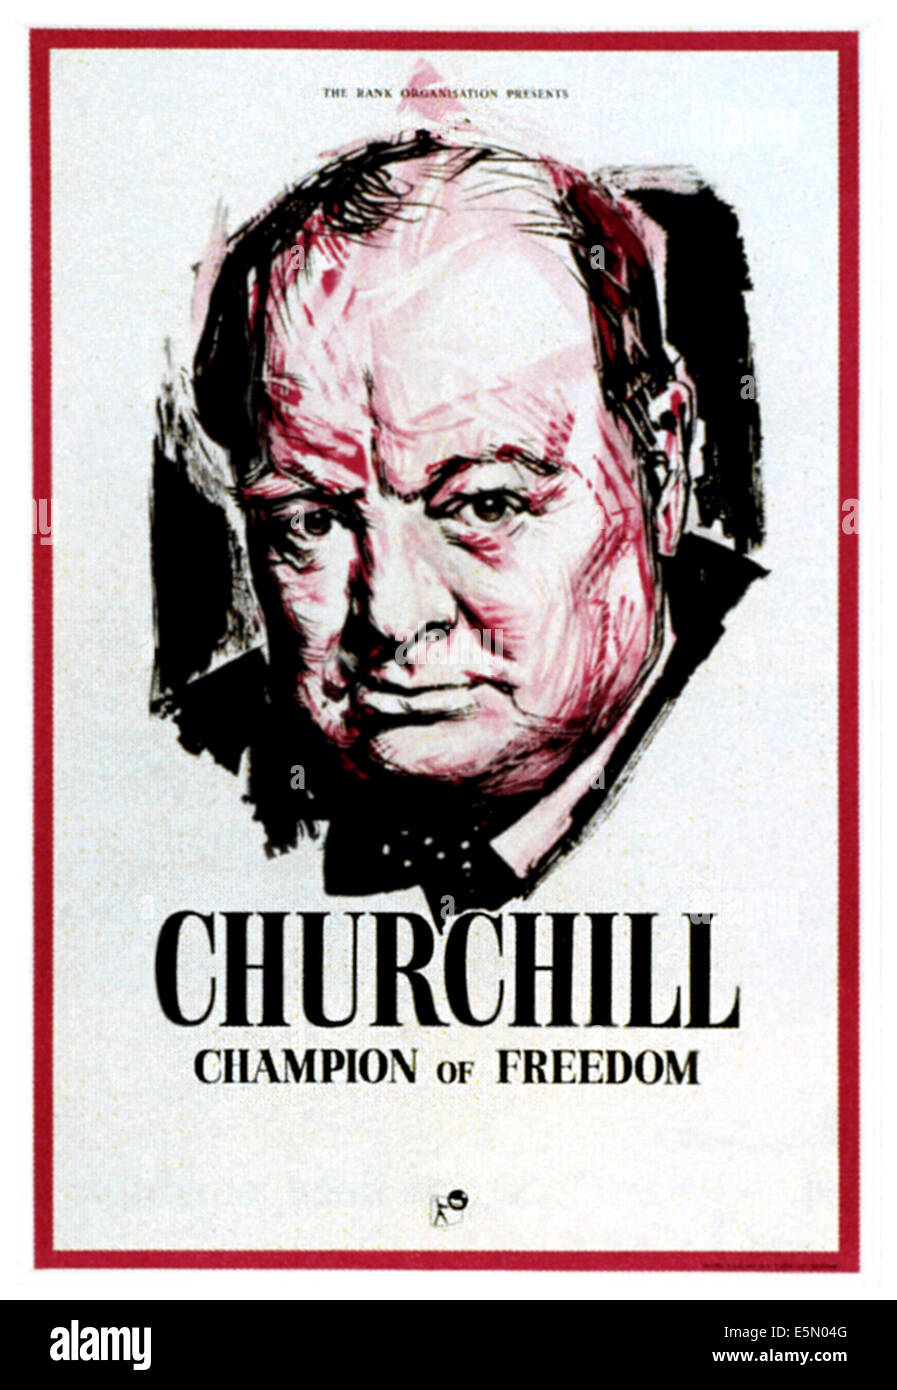 CHAMPION OF FREEDOM, Winston Churchill, 1960 - Stock Image